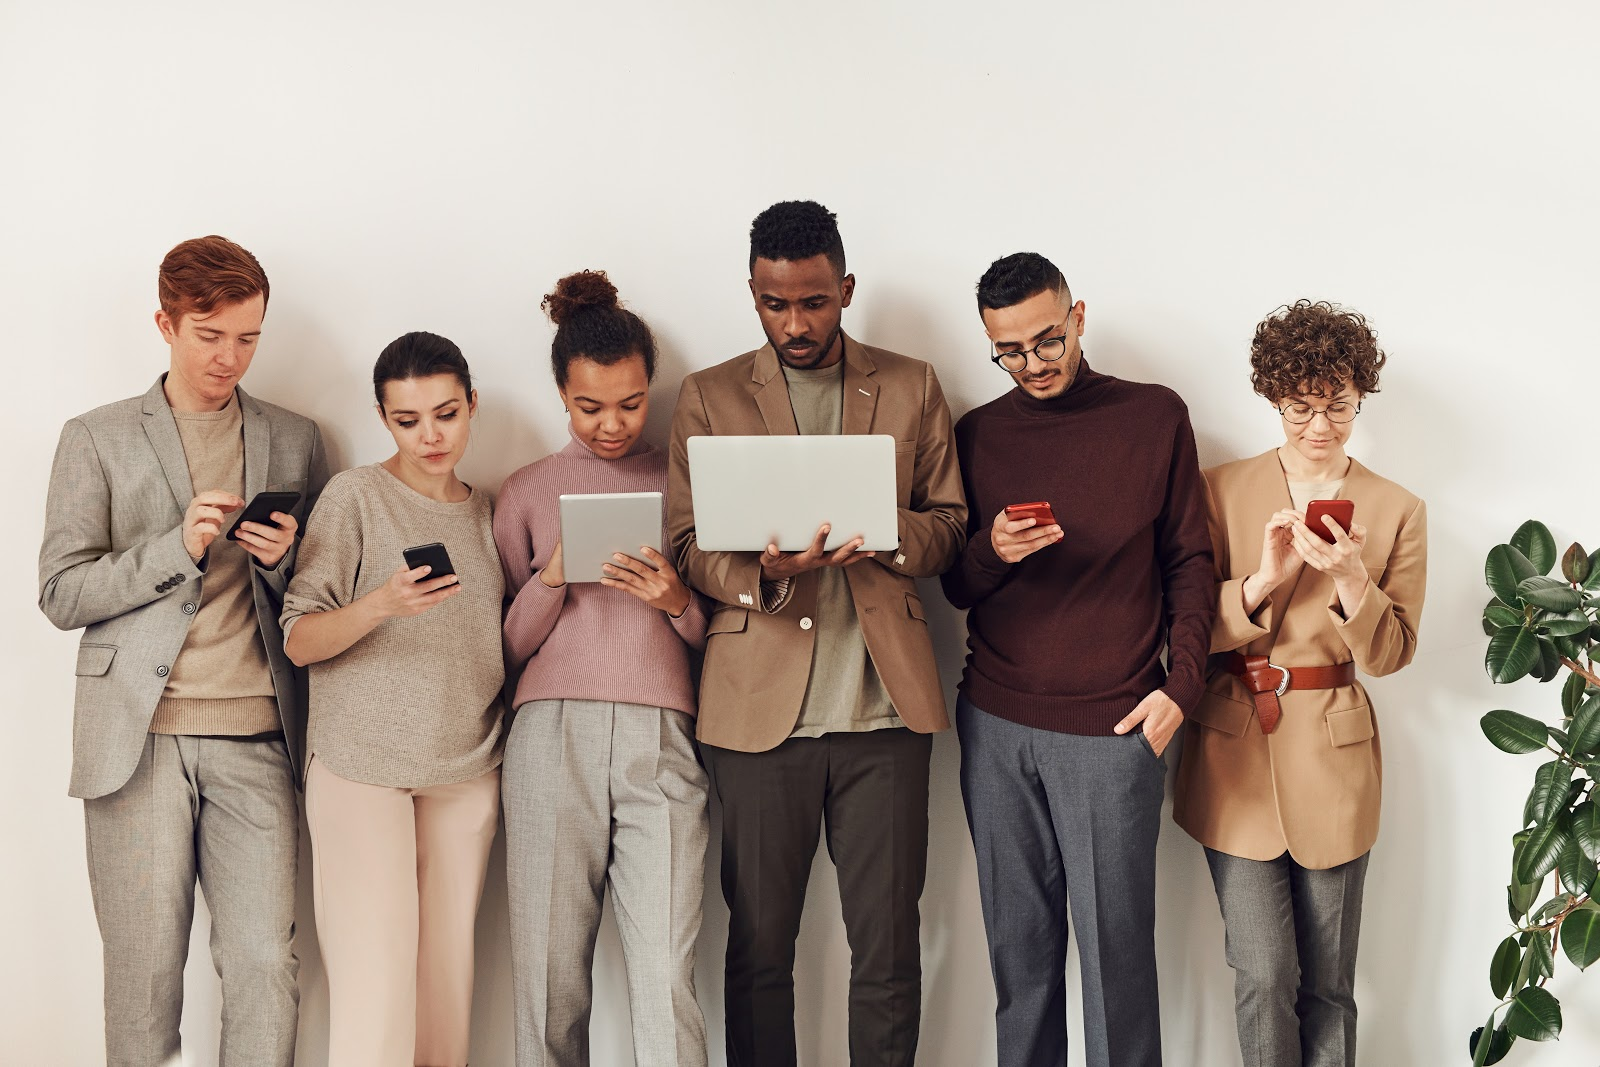 6 people leaning against a way, each of them on technological devices ranging from iPhones and laptops